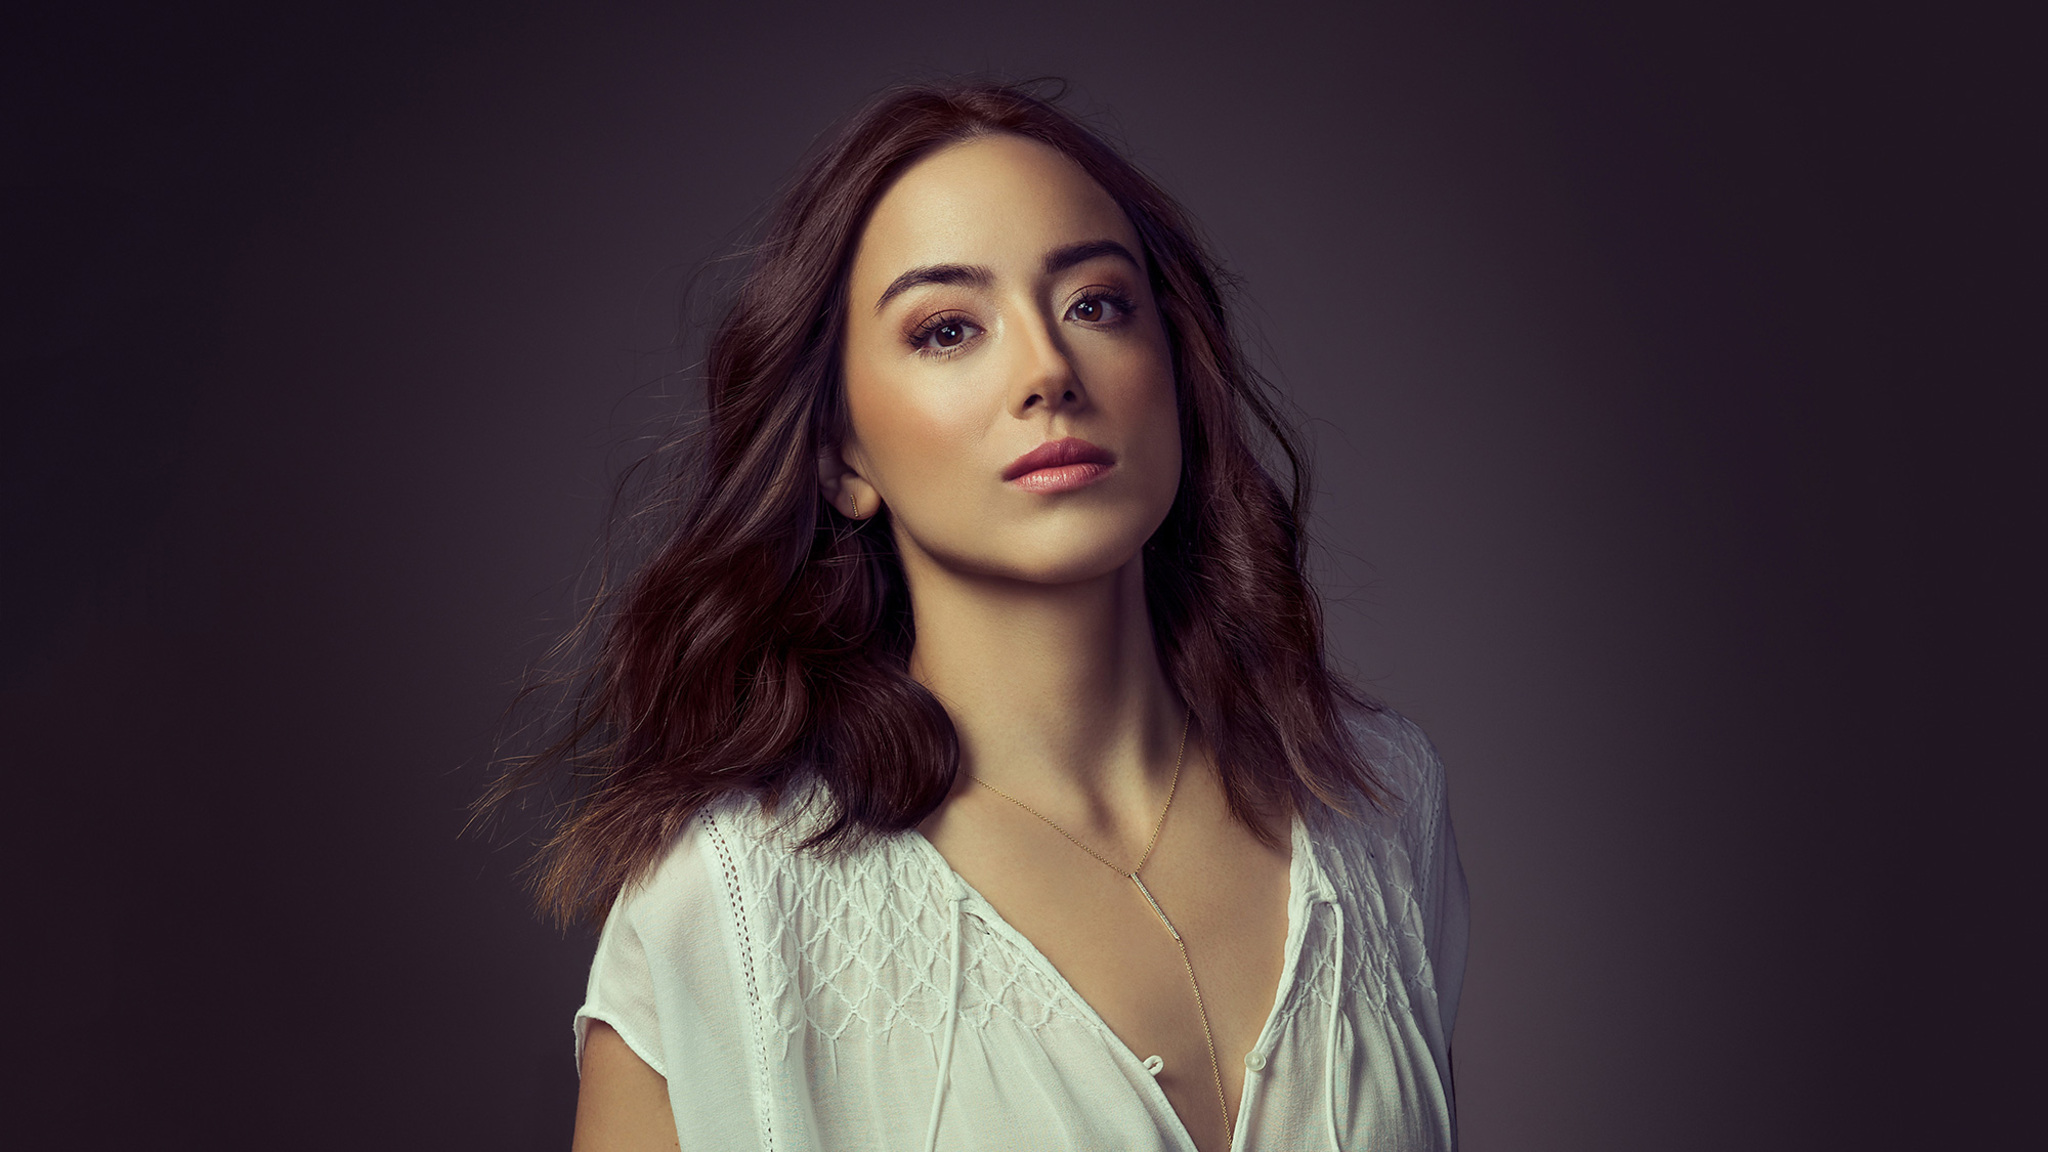 chloe-bennet-for-emmy-magazine-dq.jpg